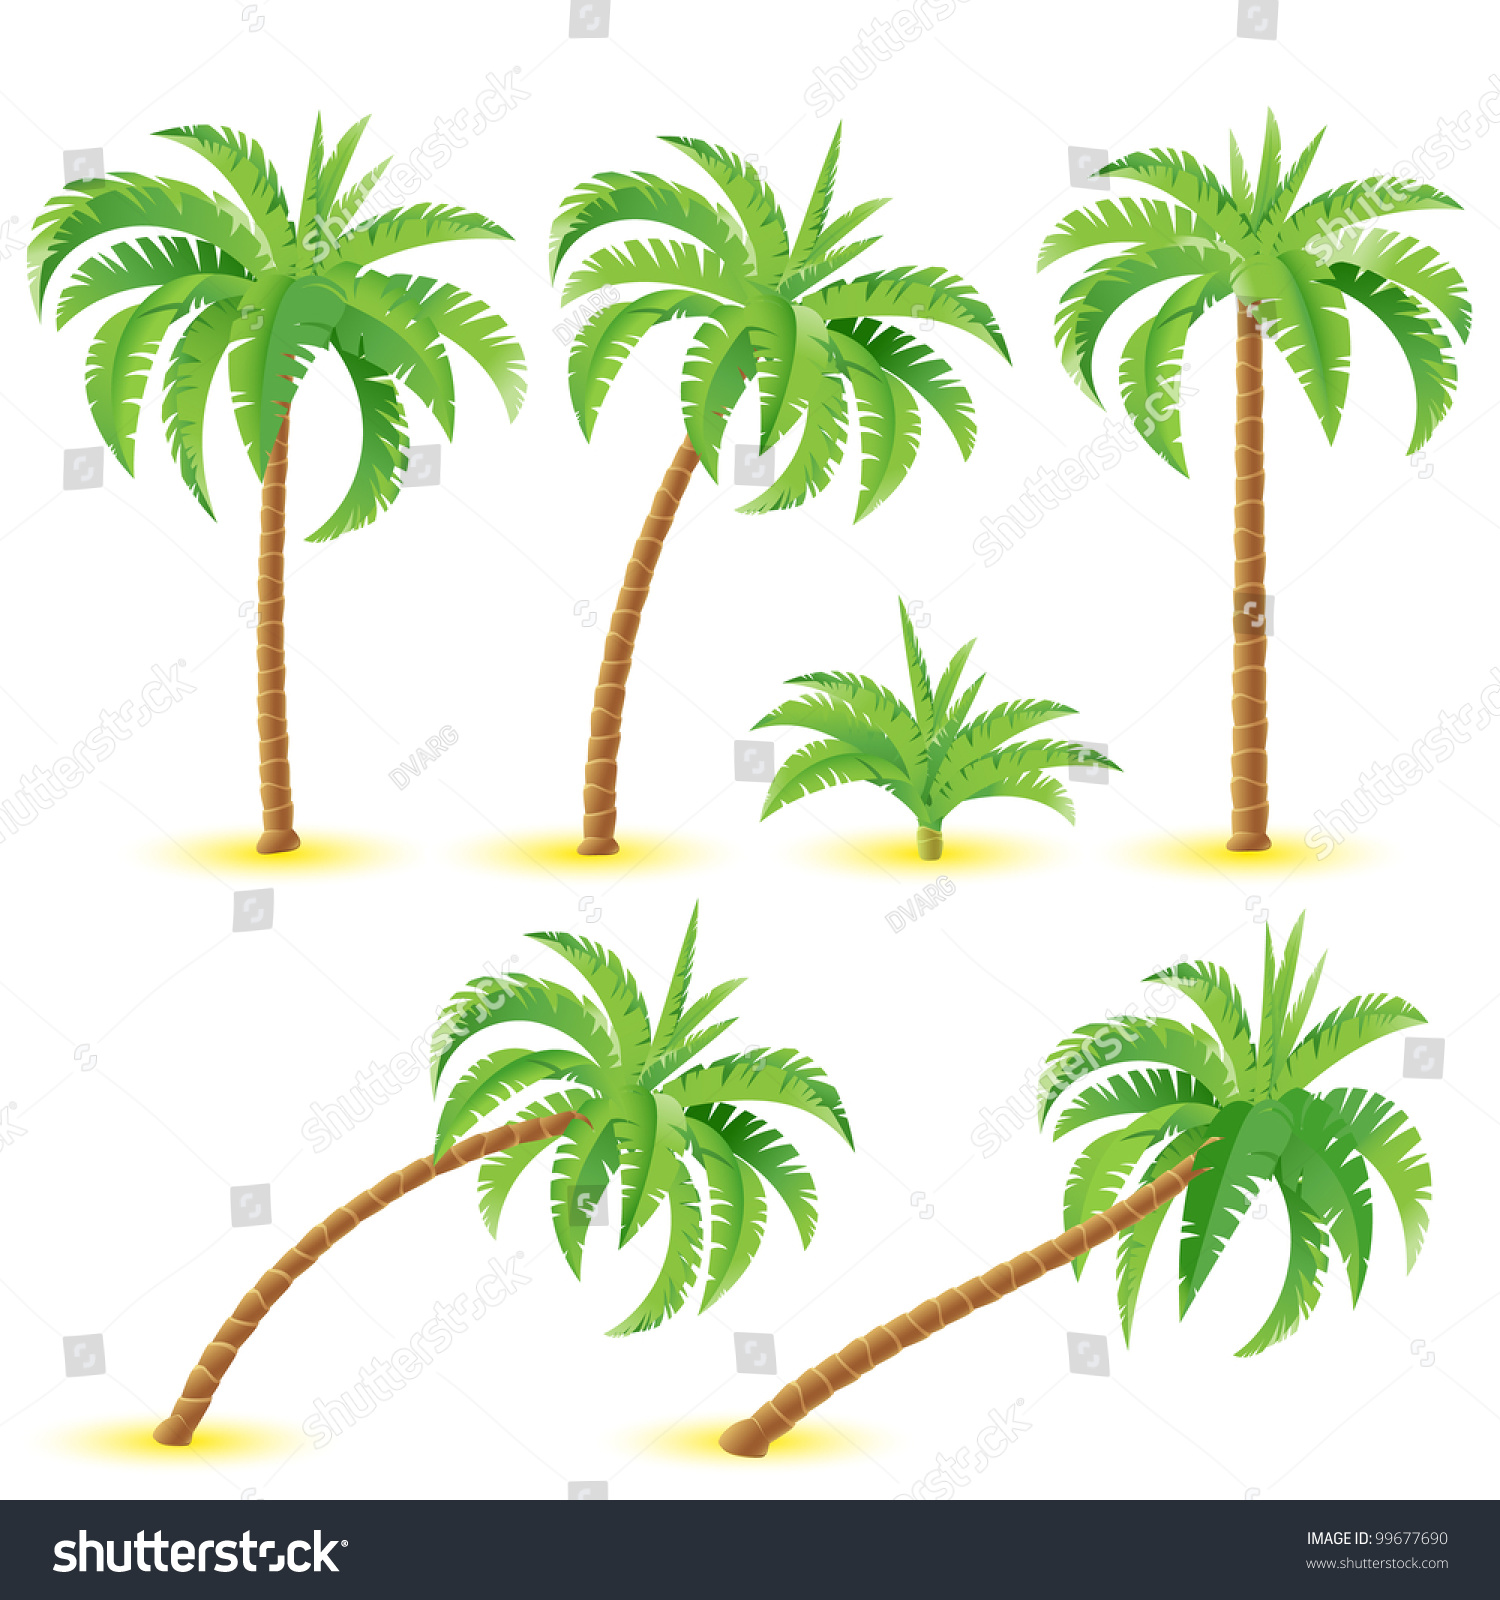 Coconut Palms Illustration On White Background Stock Vector HD ...